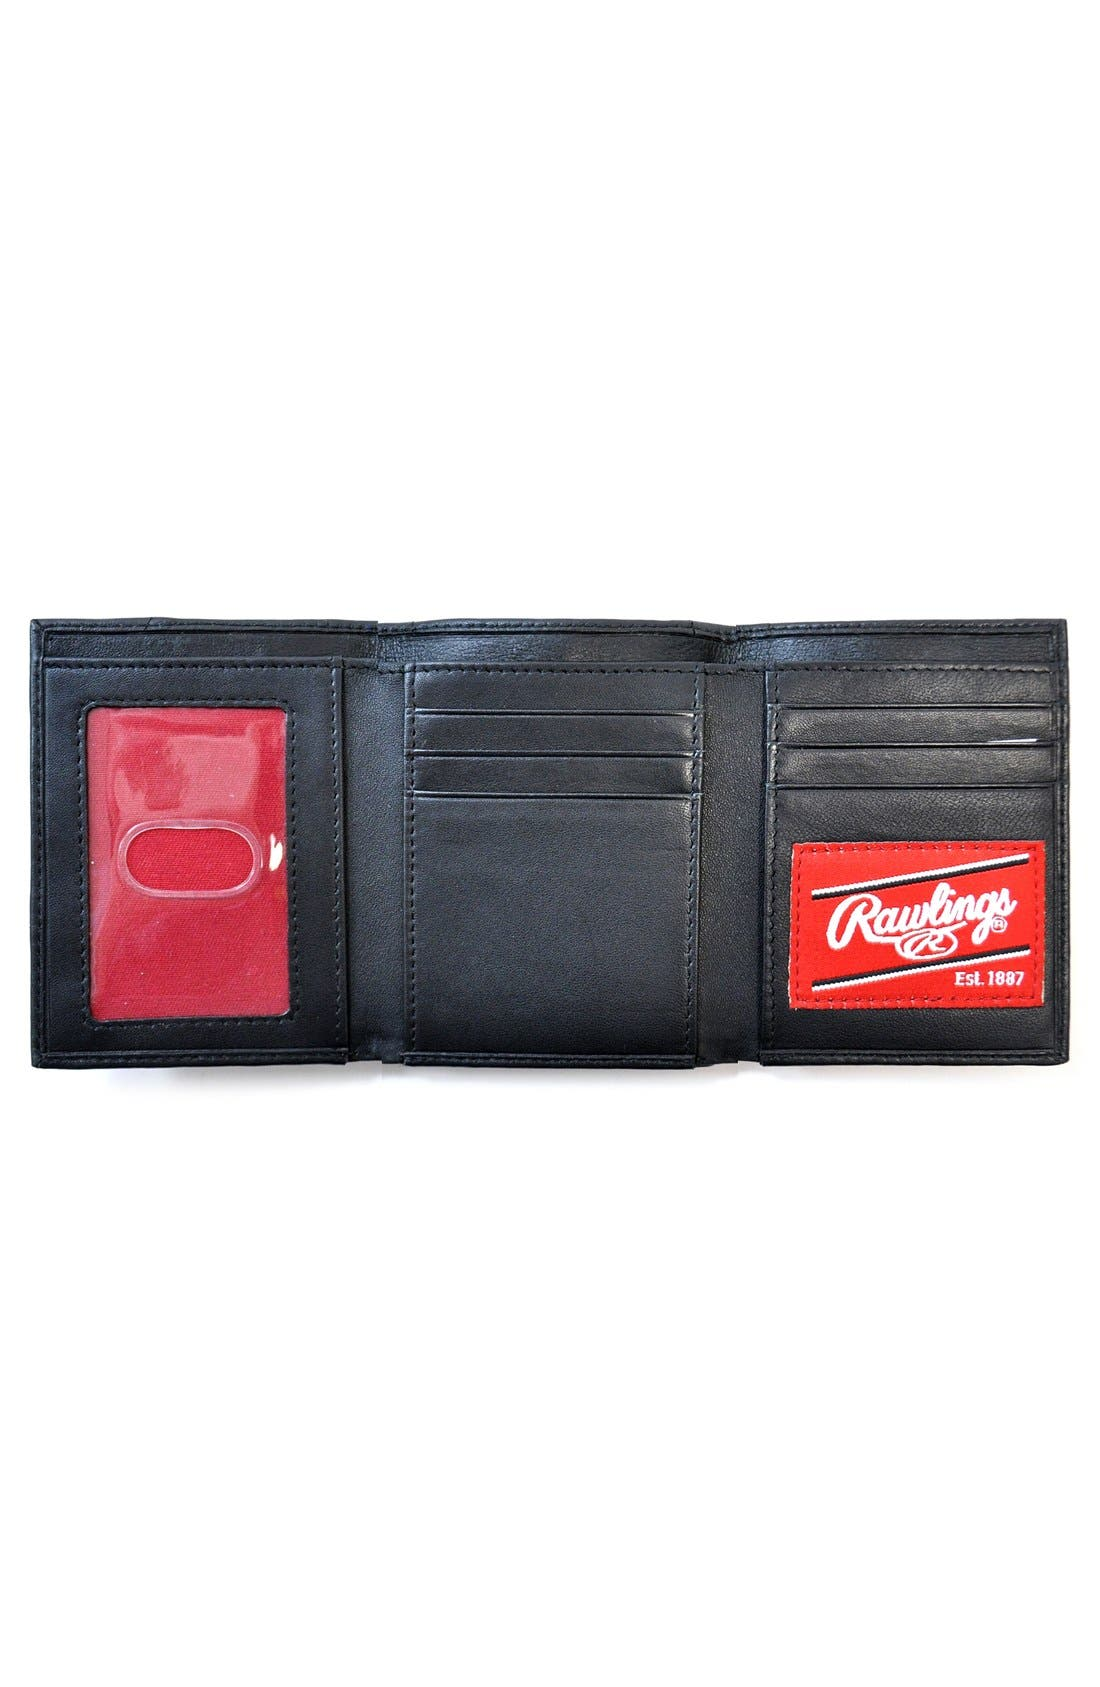 Baseball Stitch Leather Trifold Wallet,                             Alternate thumbnail 2, color,                             Black